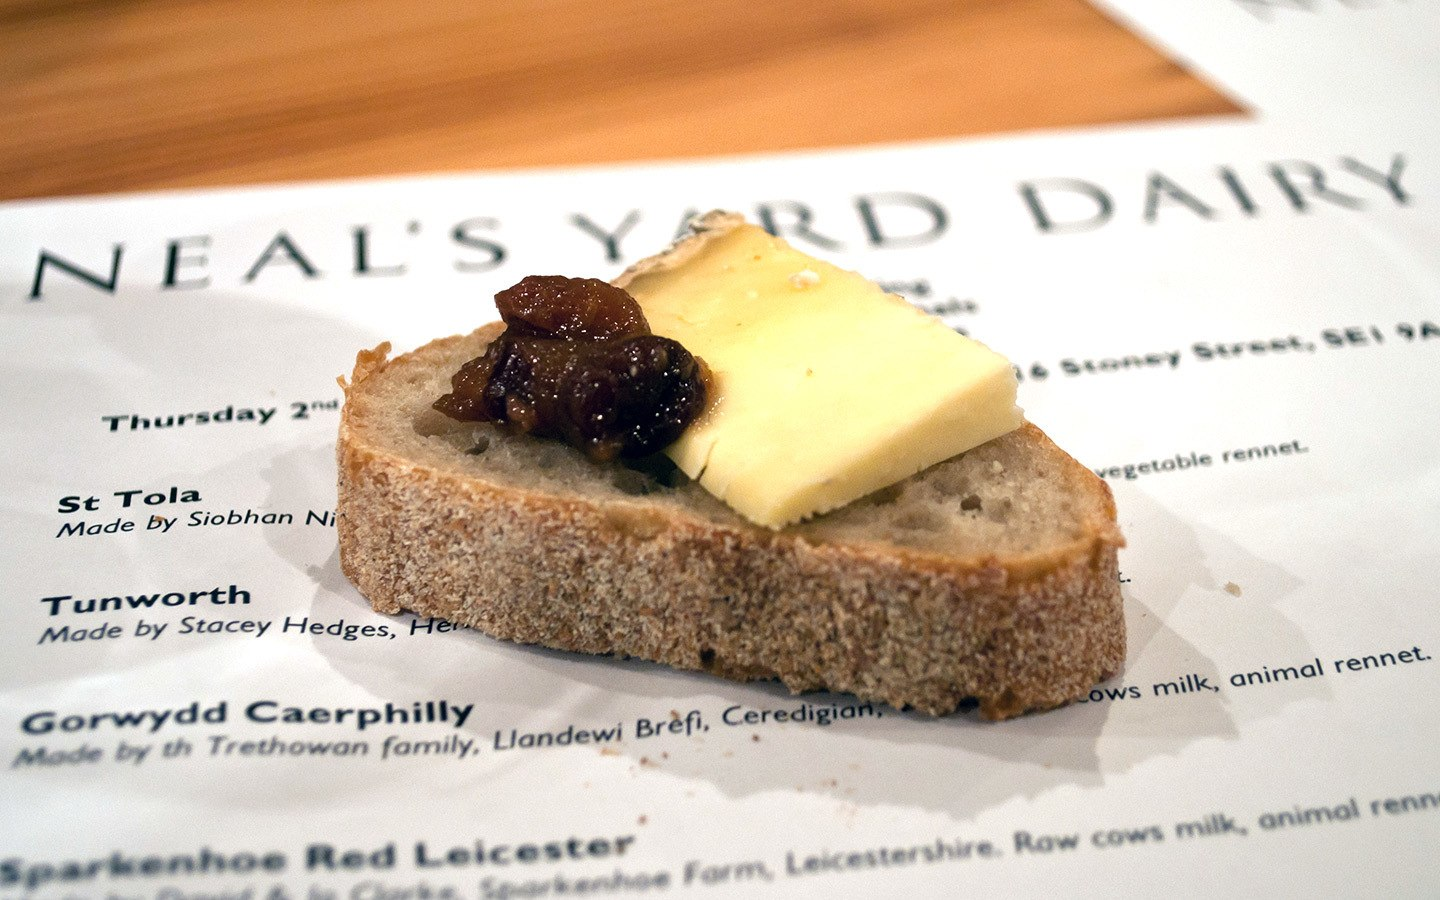 London food tour and cheese tasting at Neal's Yard Dairy